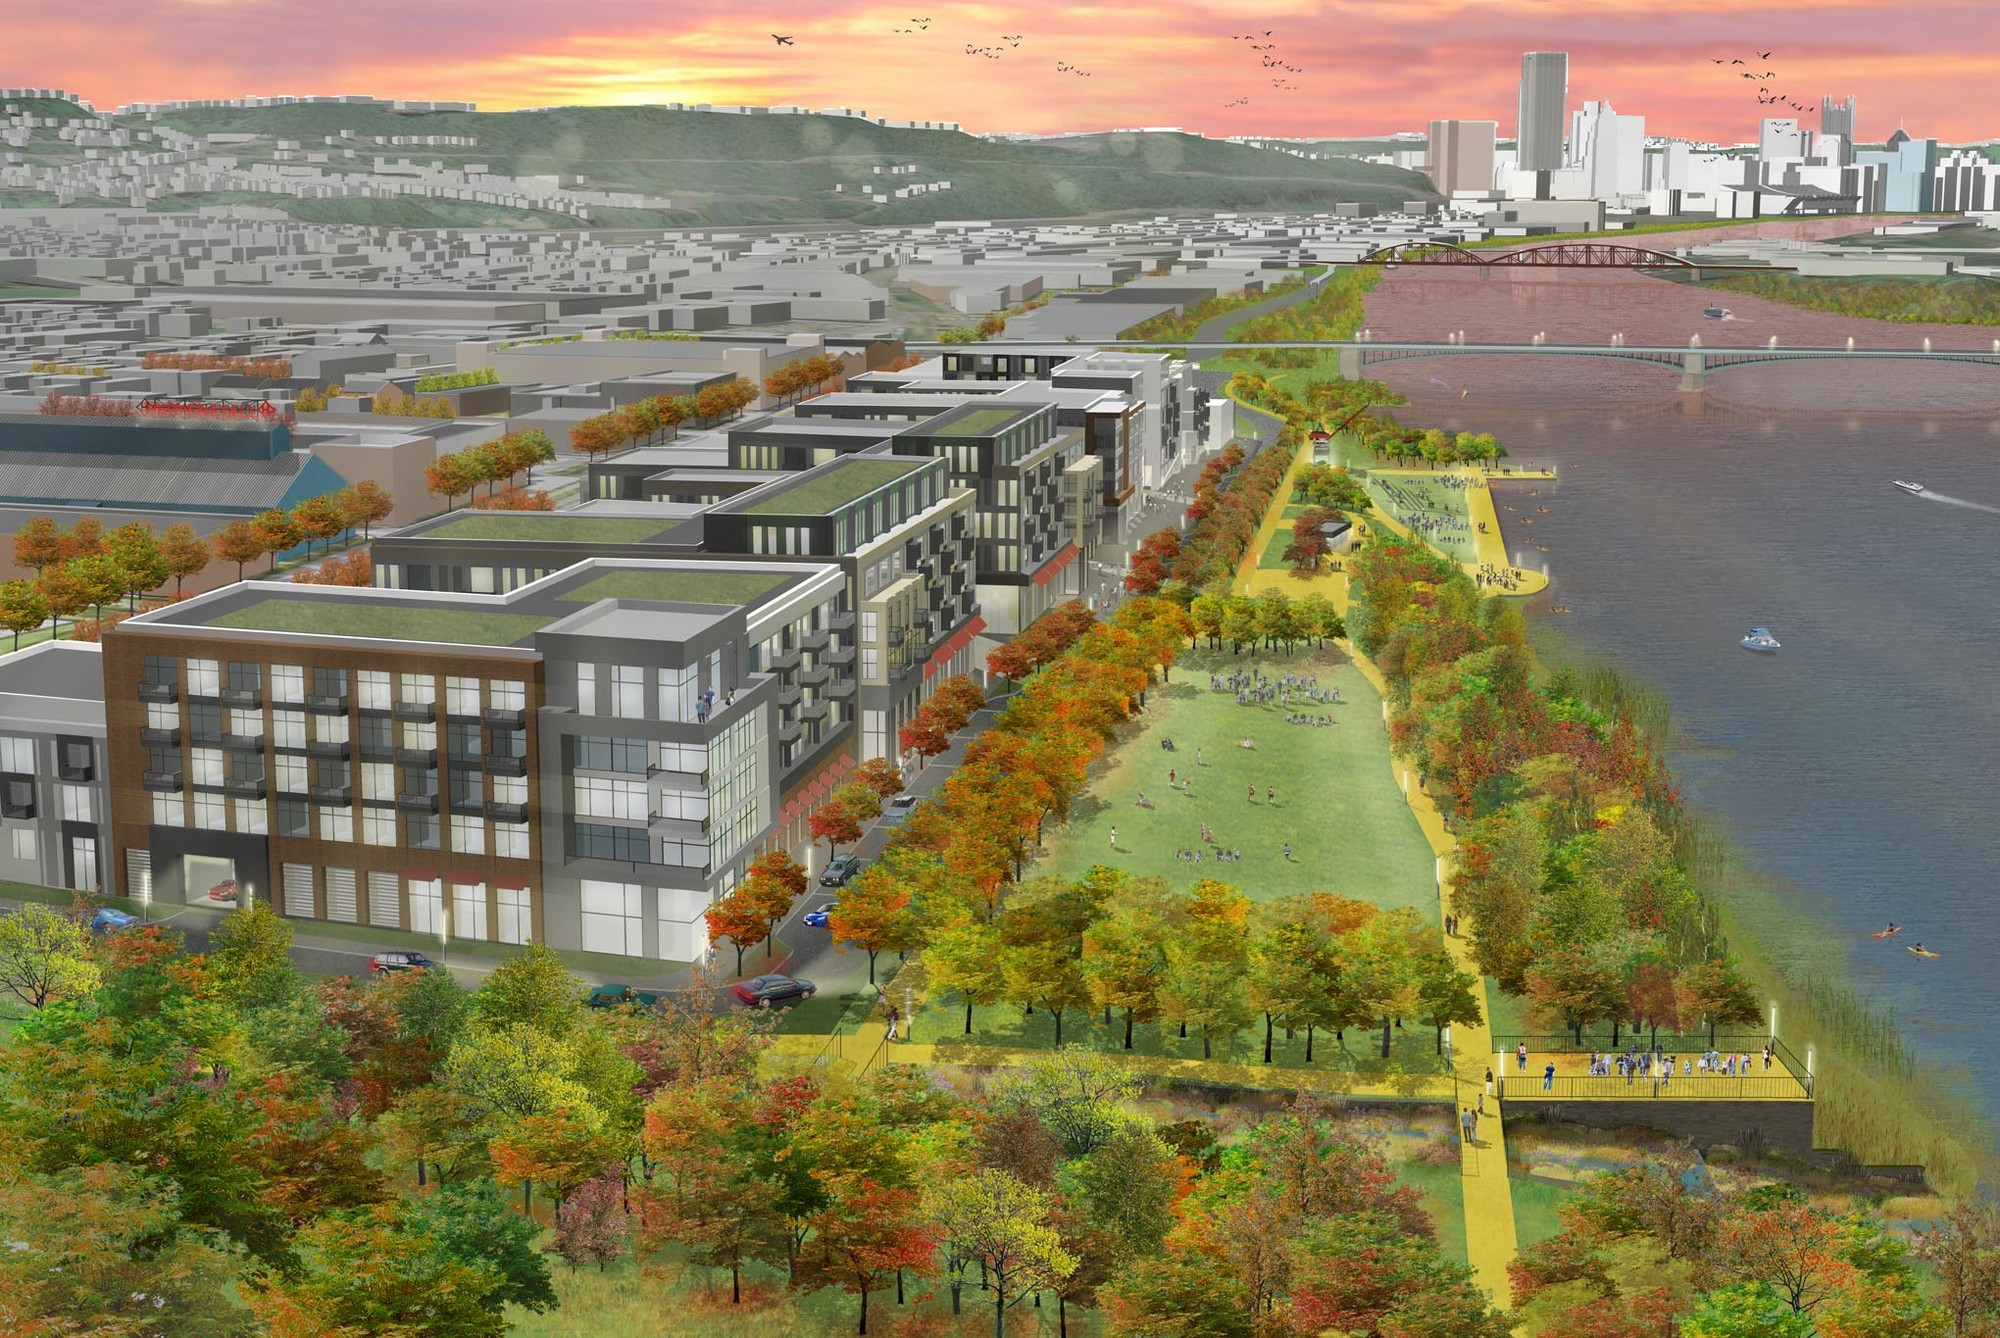 Plan Envisages Reusing Pittsburghs Industrial Past to Bring The City Closer Together, 43rd St District View Back Towards Pittsburgh Courtesy of Sasaki Associates